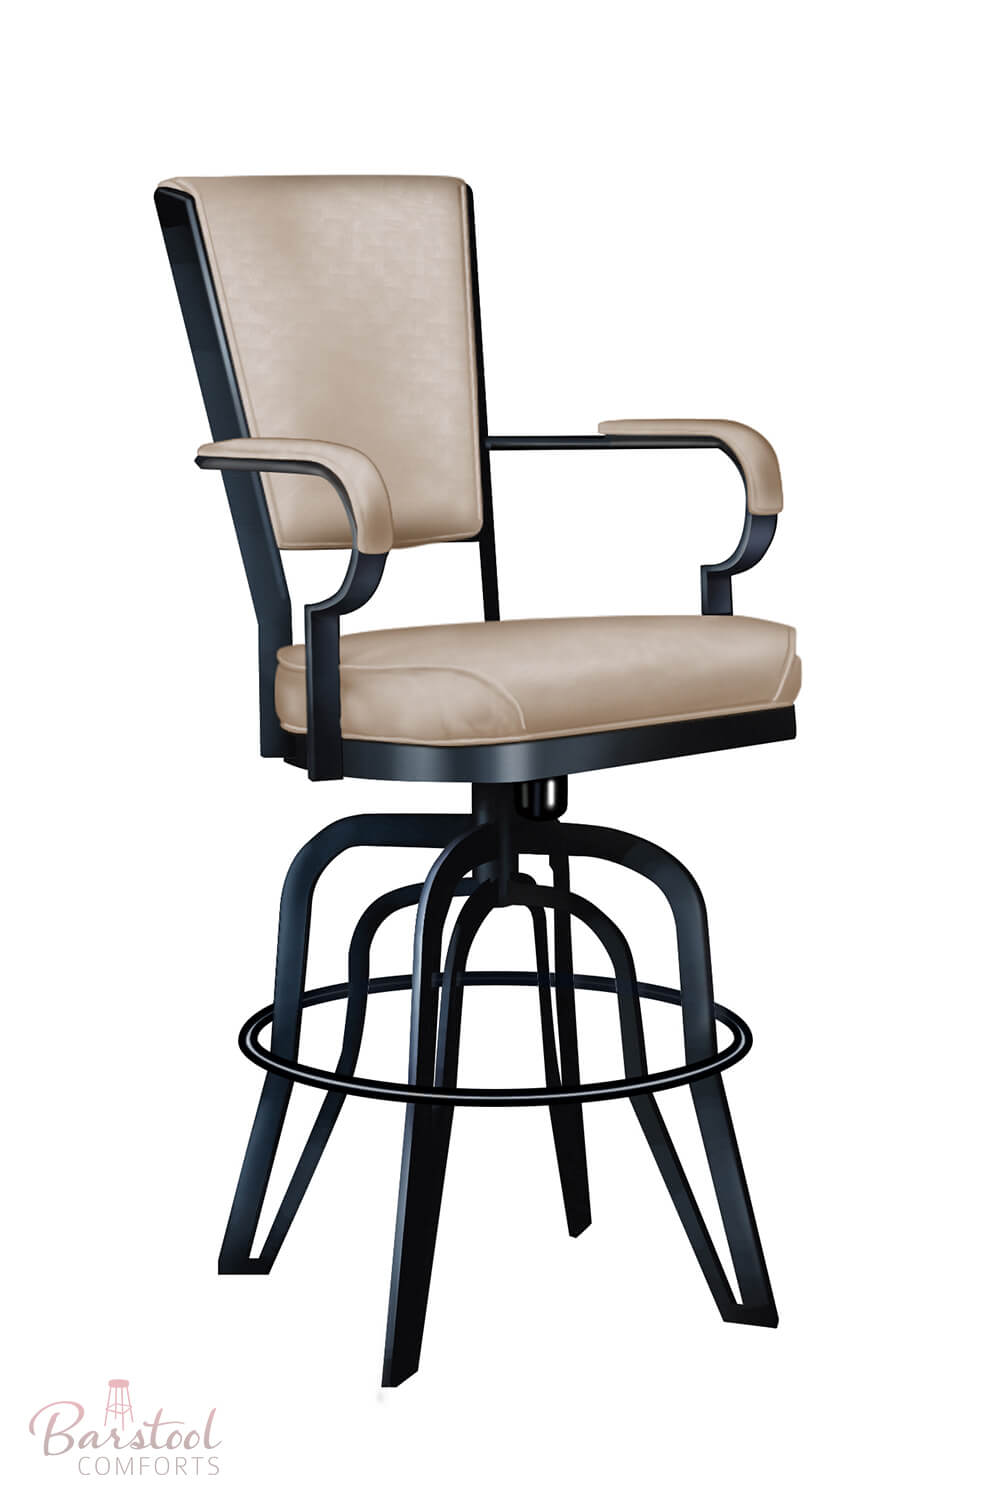 Lisa Furniture's #2545 Tilt Swivel Stool with Arms in Black Finish and  Brown Fabric ...